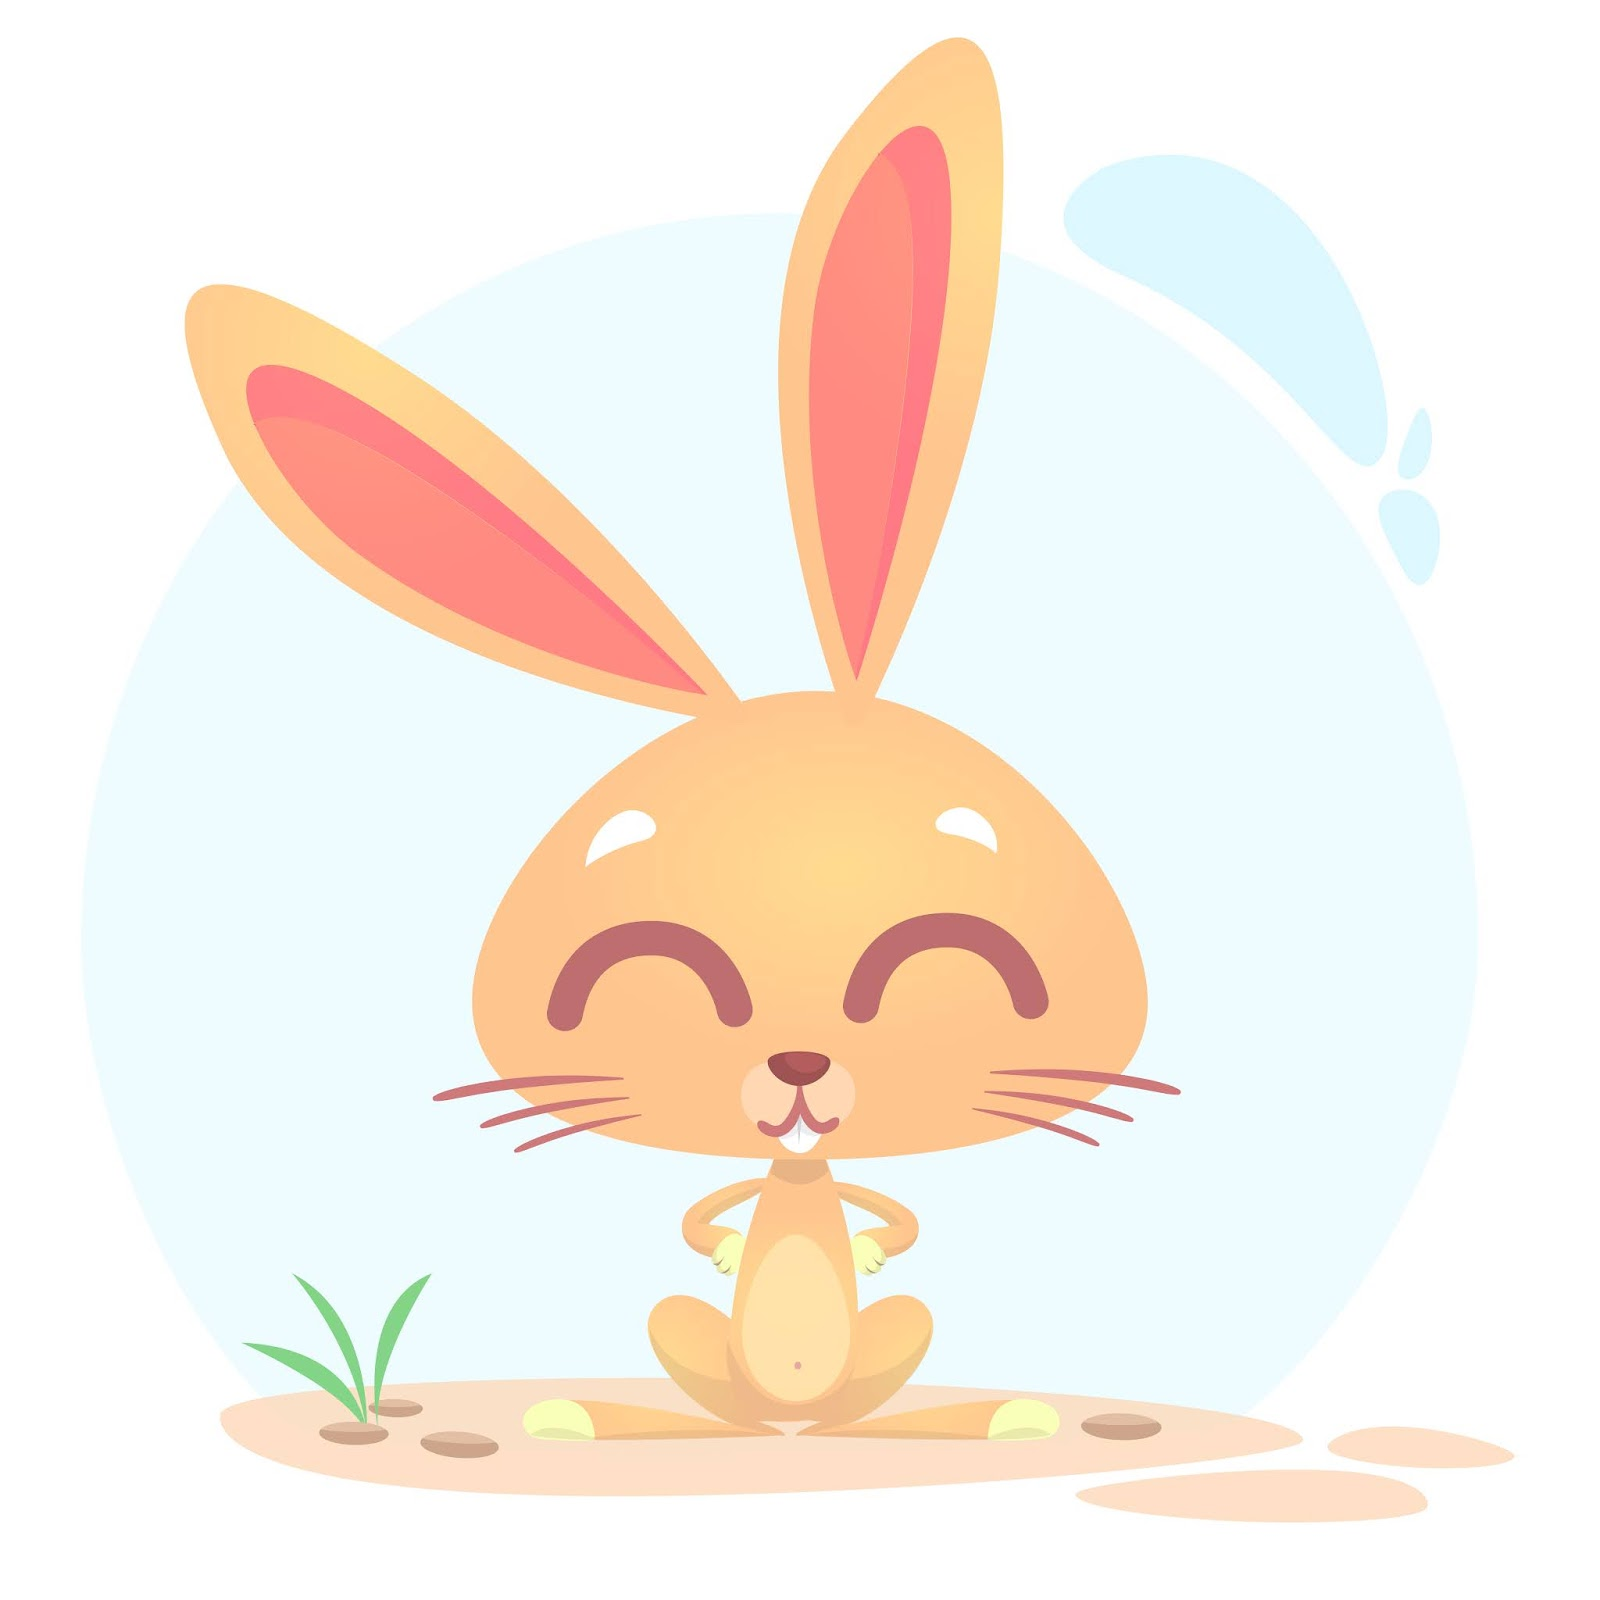 Bunny Style Free Download Vector CDR, AI, EPS and PNG Formats